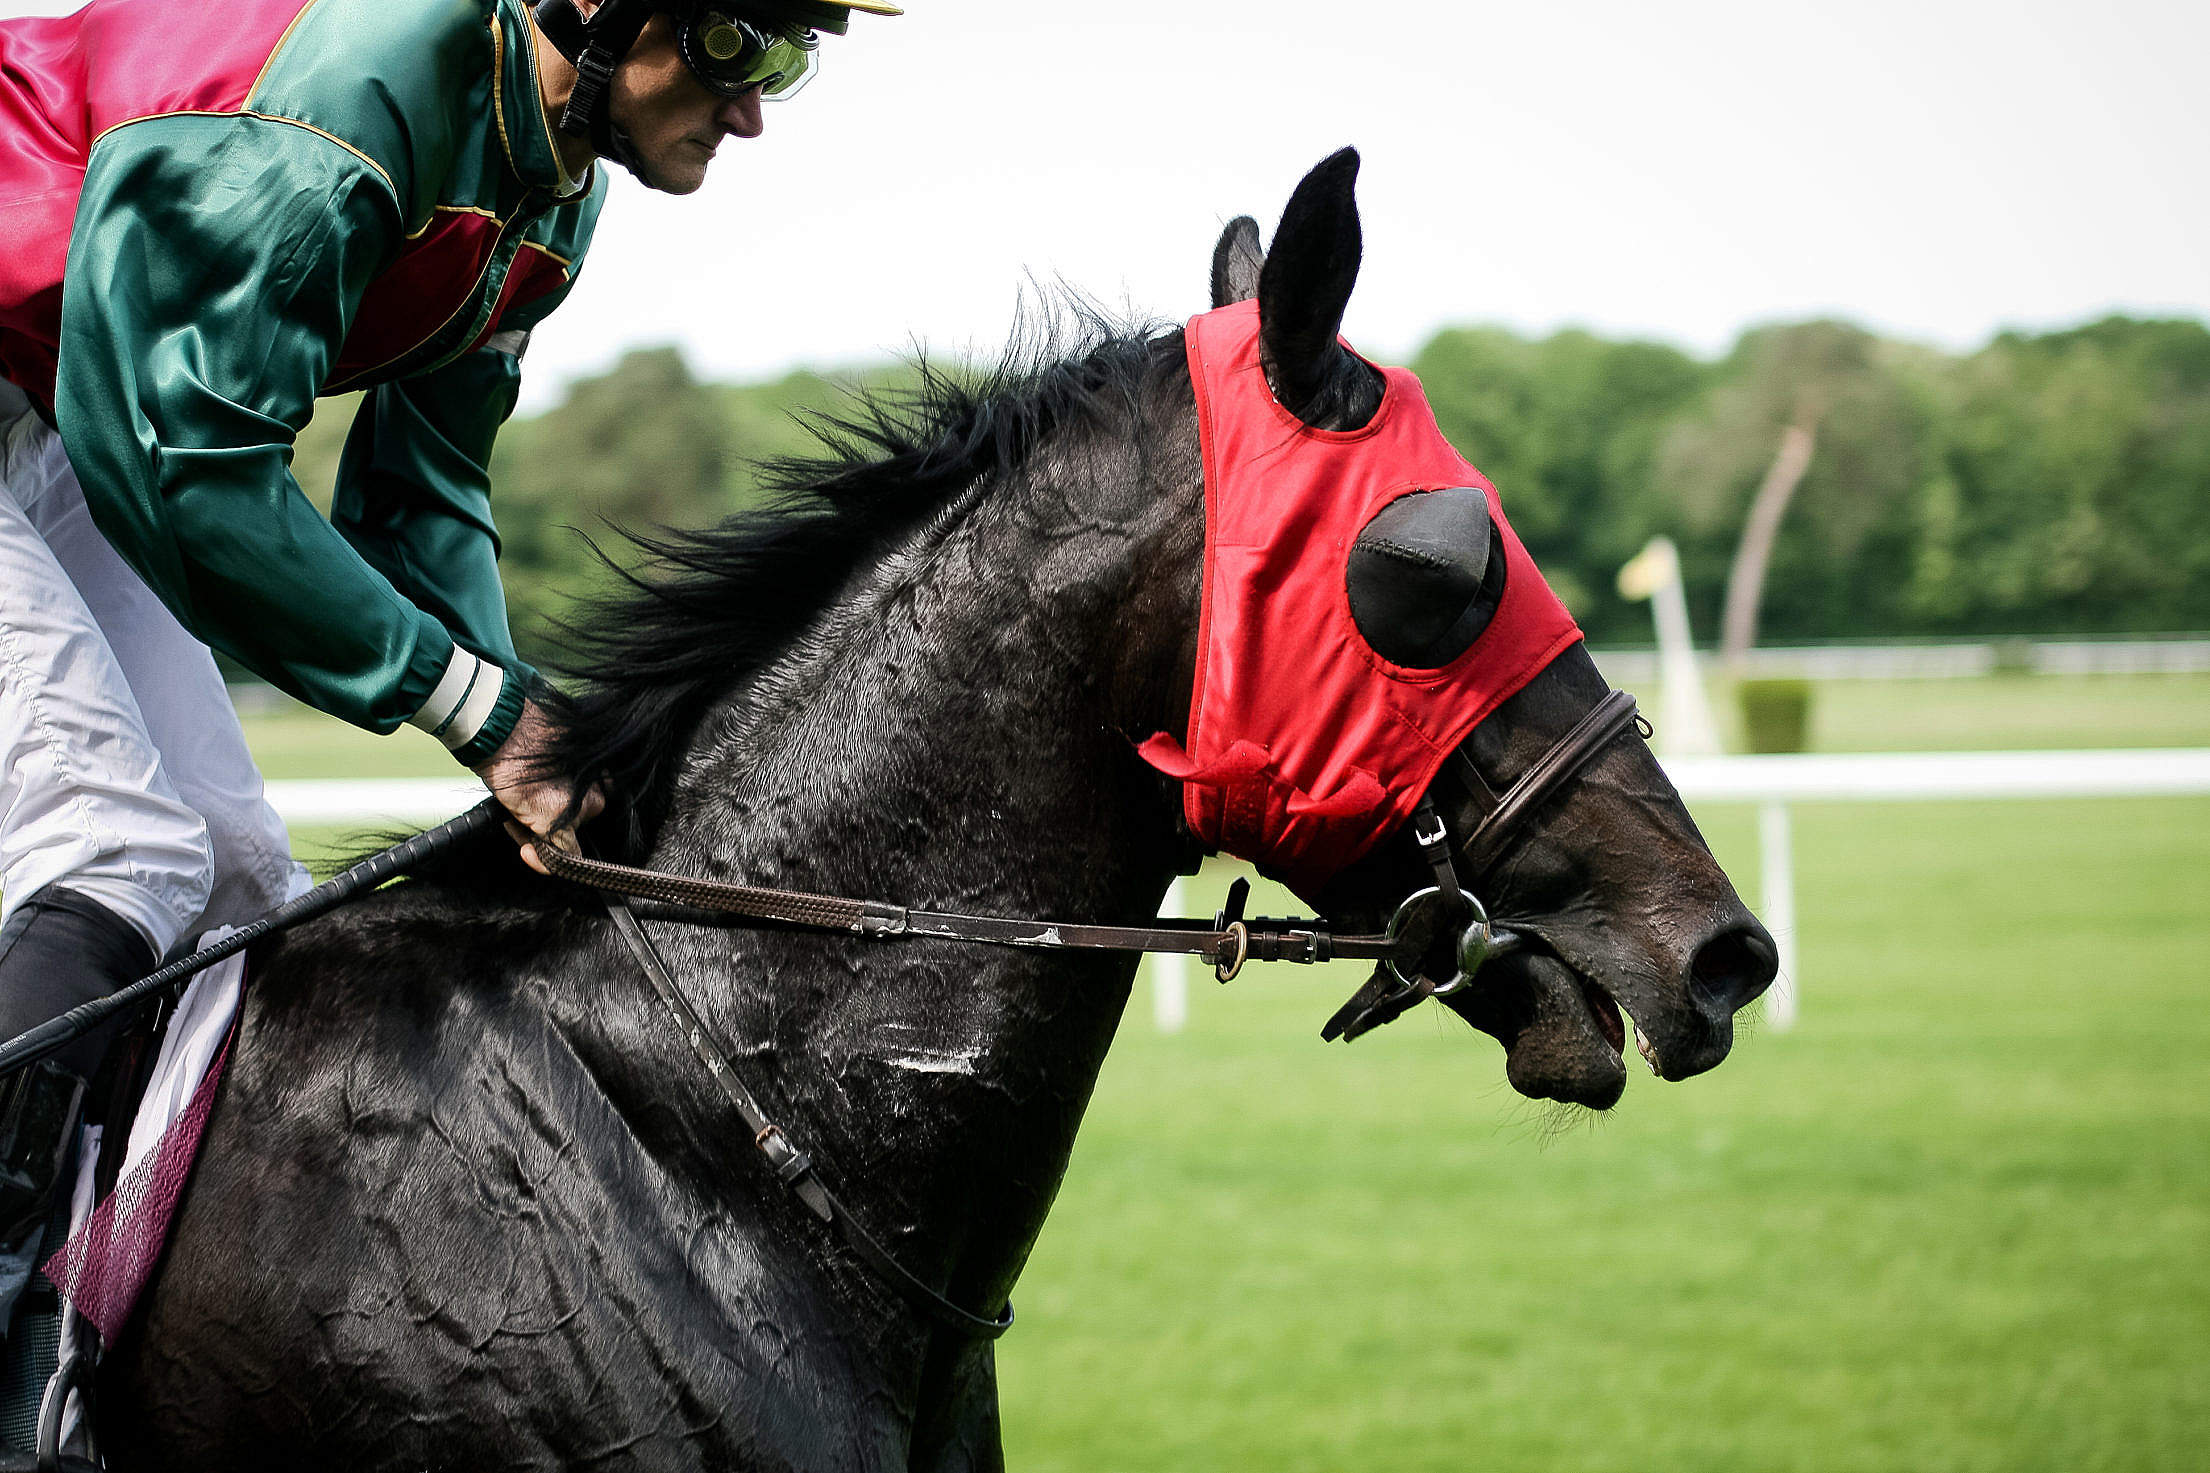 Horse Racing Free Stock Photo